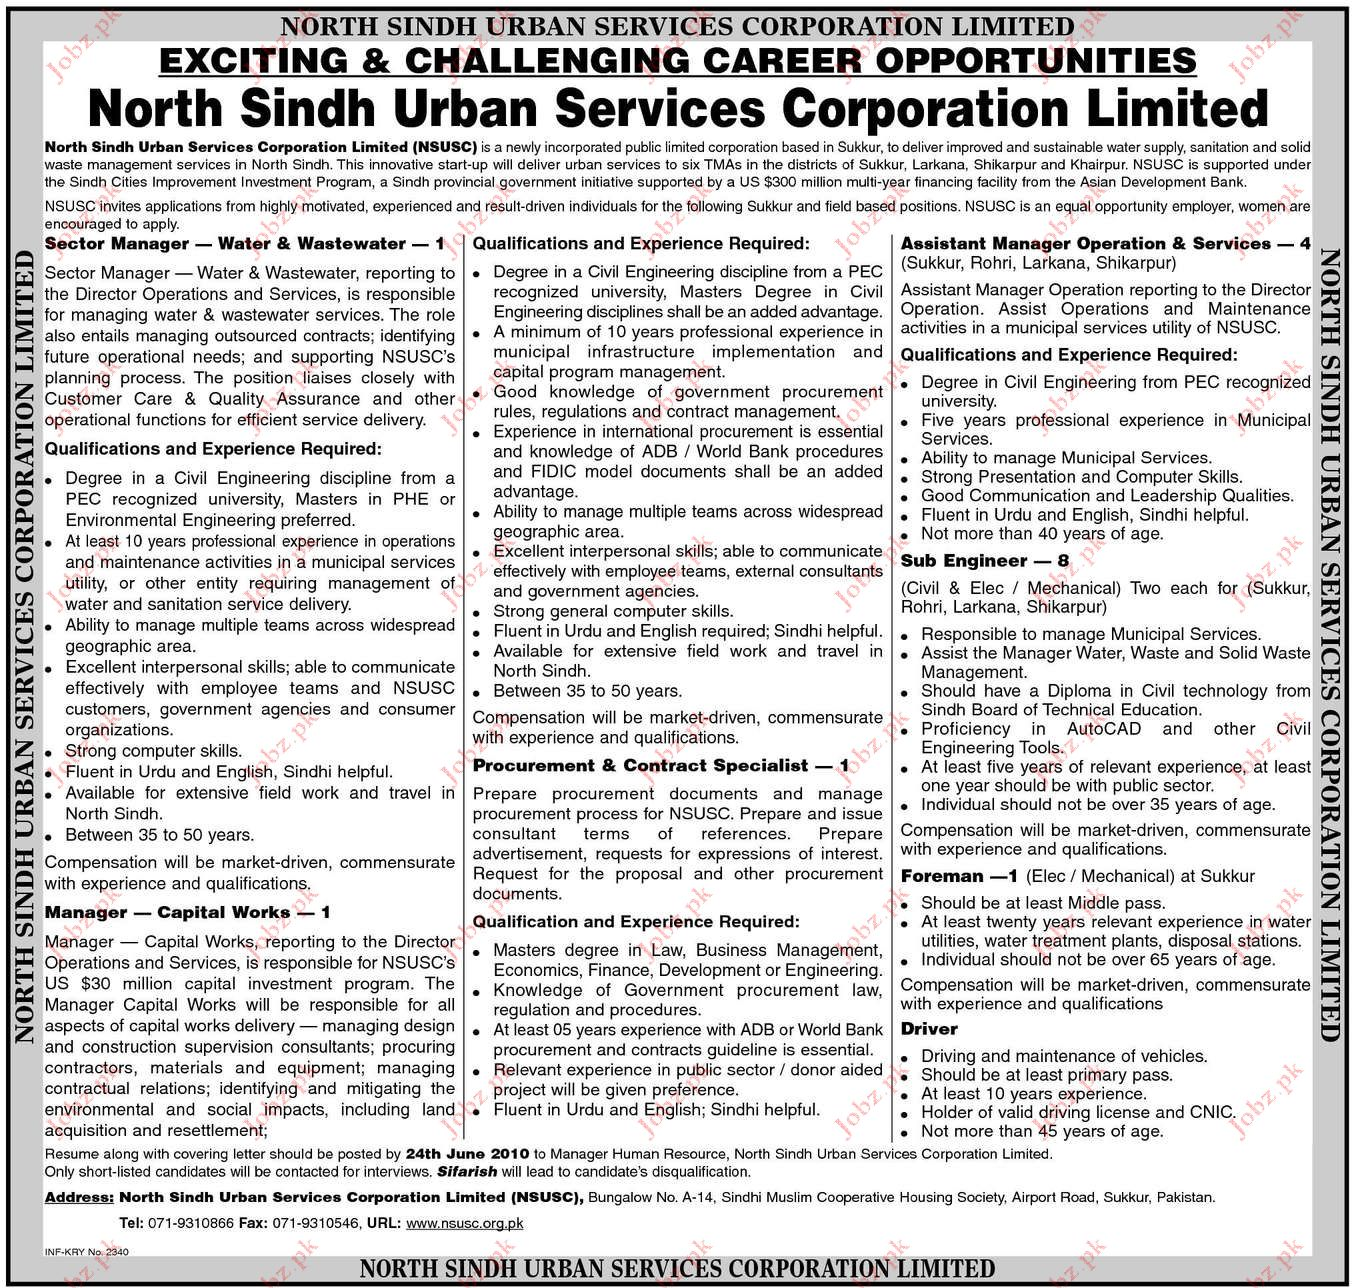 Job Opportunities in North Sindh Urban Services Corporation